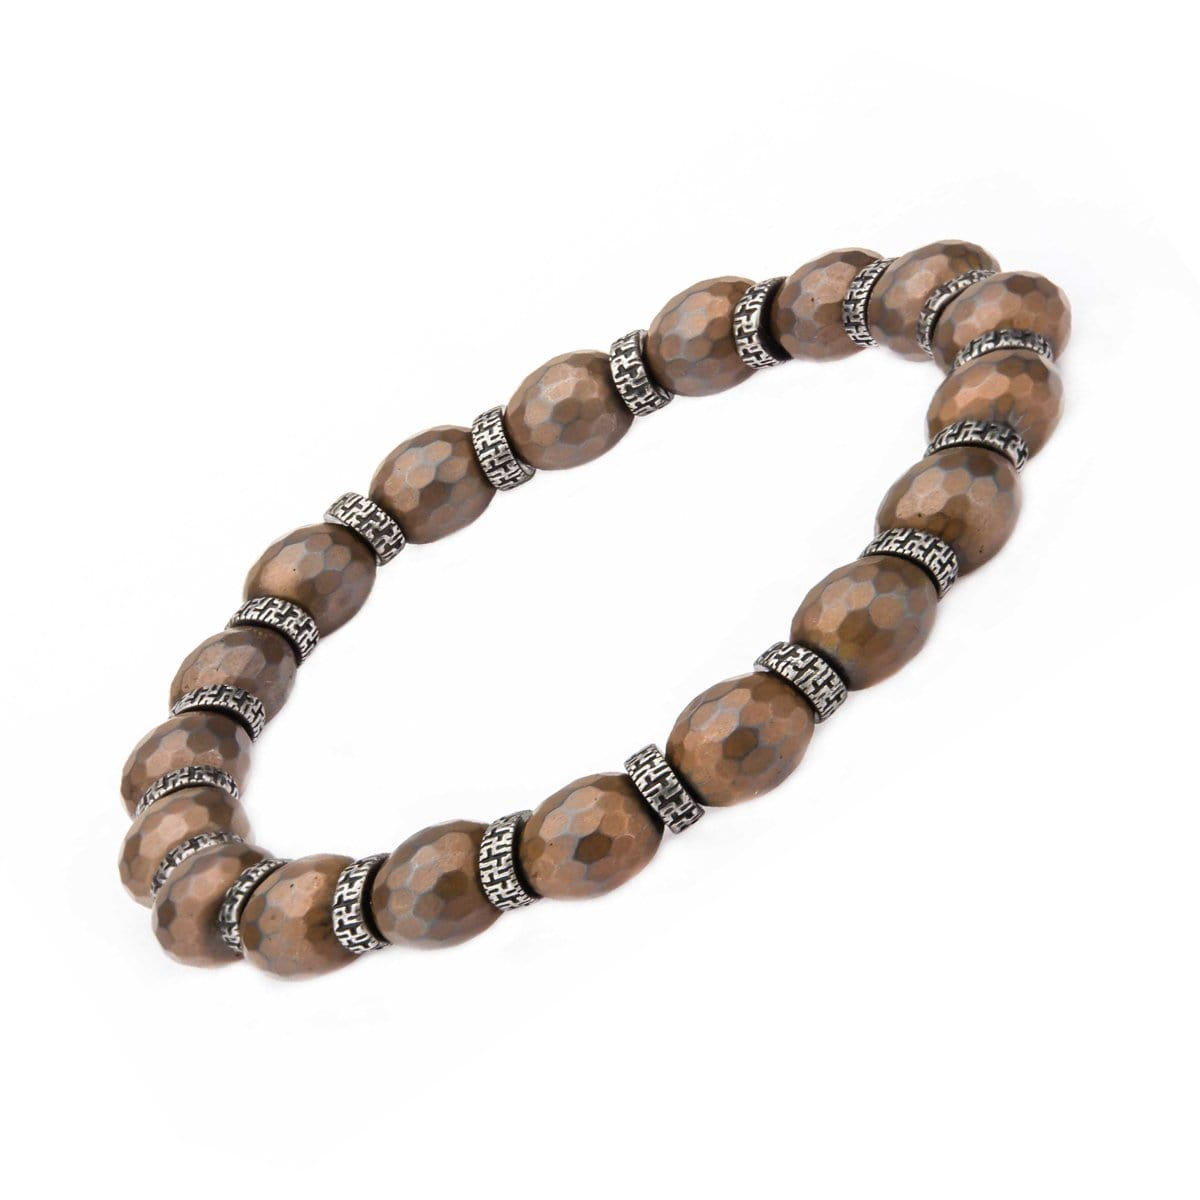 Darkened Silver Stainless Steel with Brown Hematite Bead and Antique Separator Stretch Bracelet